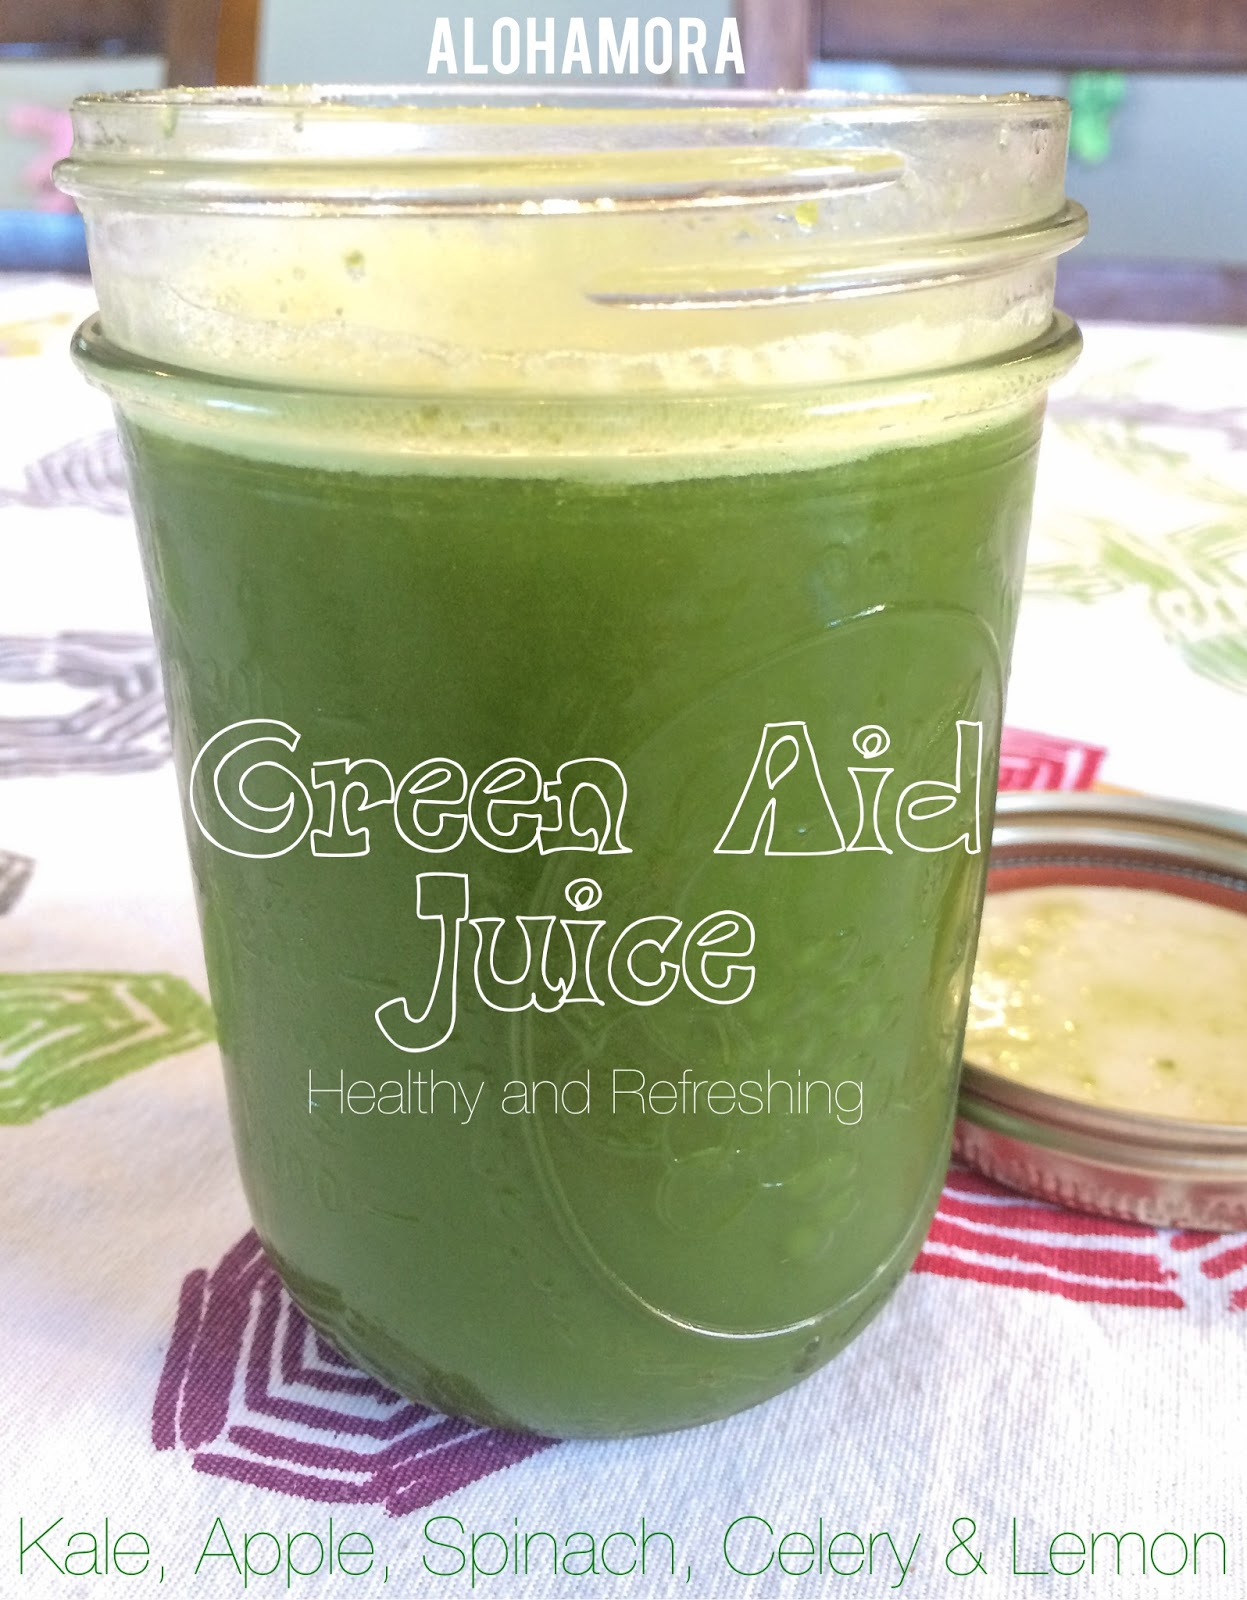 Green Aid Juice- a Healthy, diet friendly, and nutritious juice that fits a raw diet as well as gluten free, egg, free, dairy free, and nut free.  It's delicious with a sweet and tangy taste you'll love.  My favorite green juice recipe! Alohamora Open a Book http://www.alohamoraopenabook.blogspot.com/